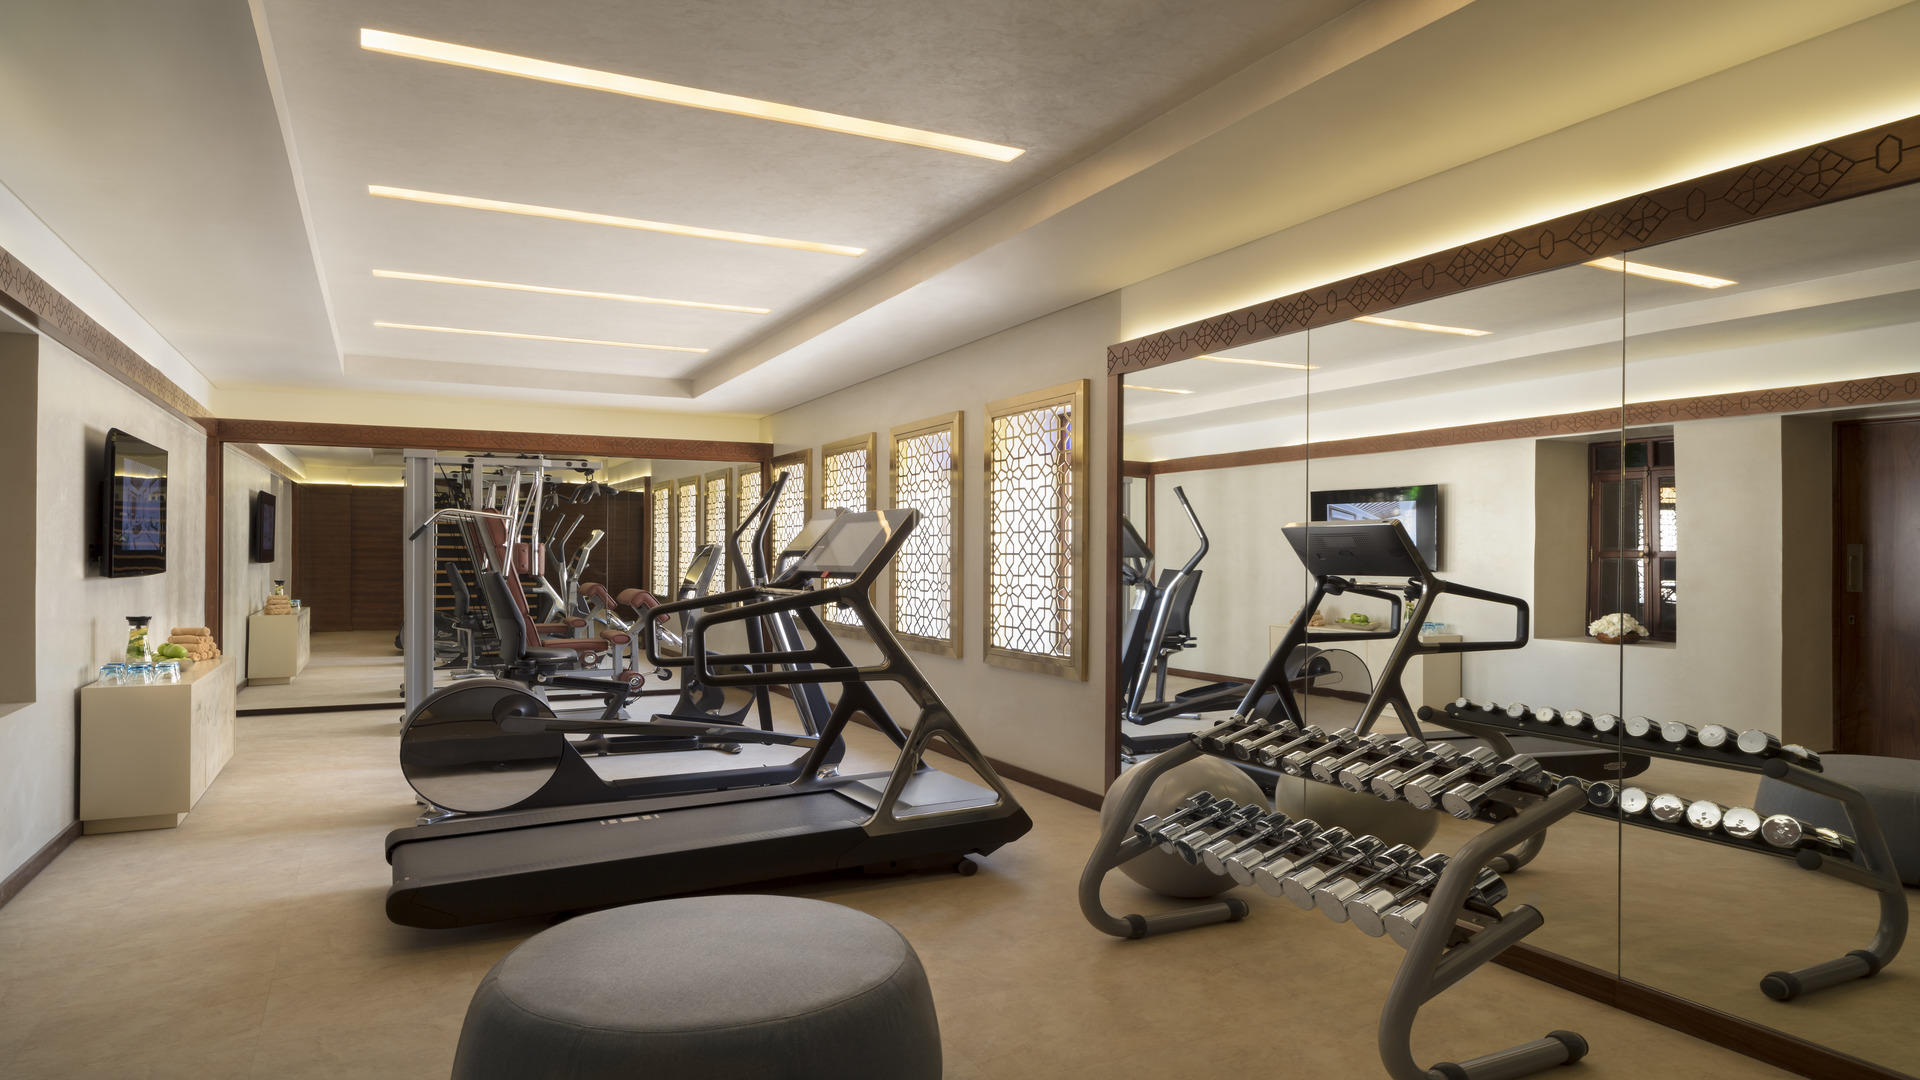 Souq_Al_Wakra_Hotel_ 卡塔尔 _by_Tivoli_FitnessCenter